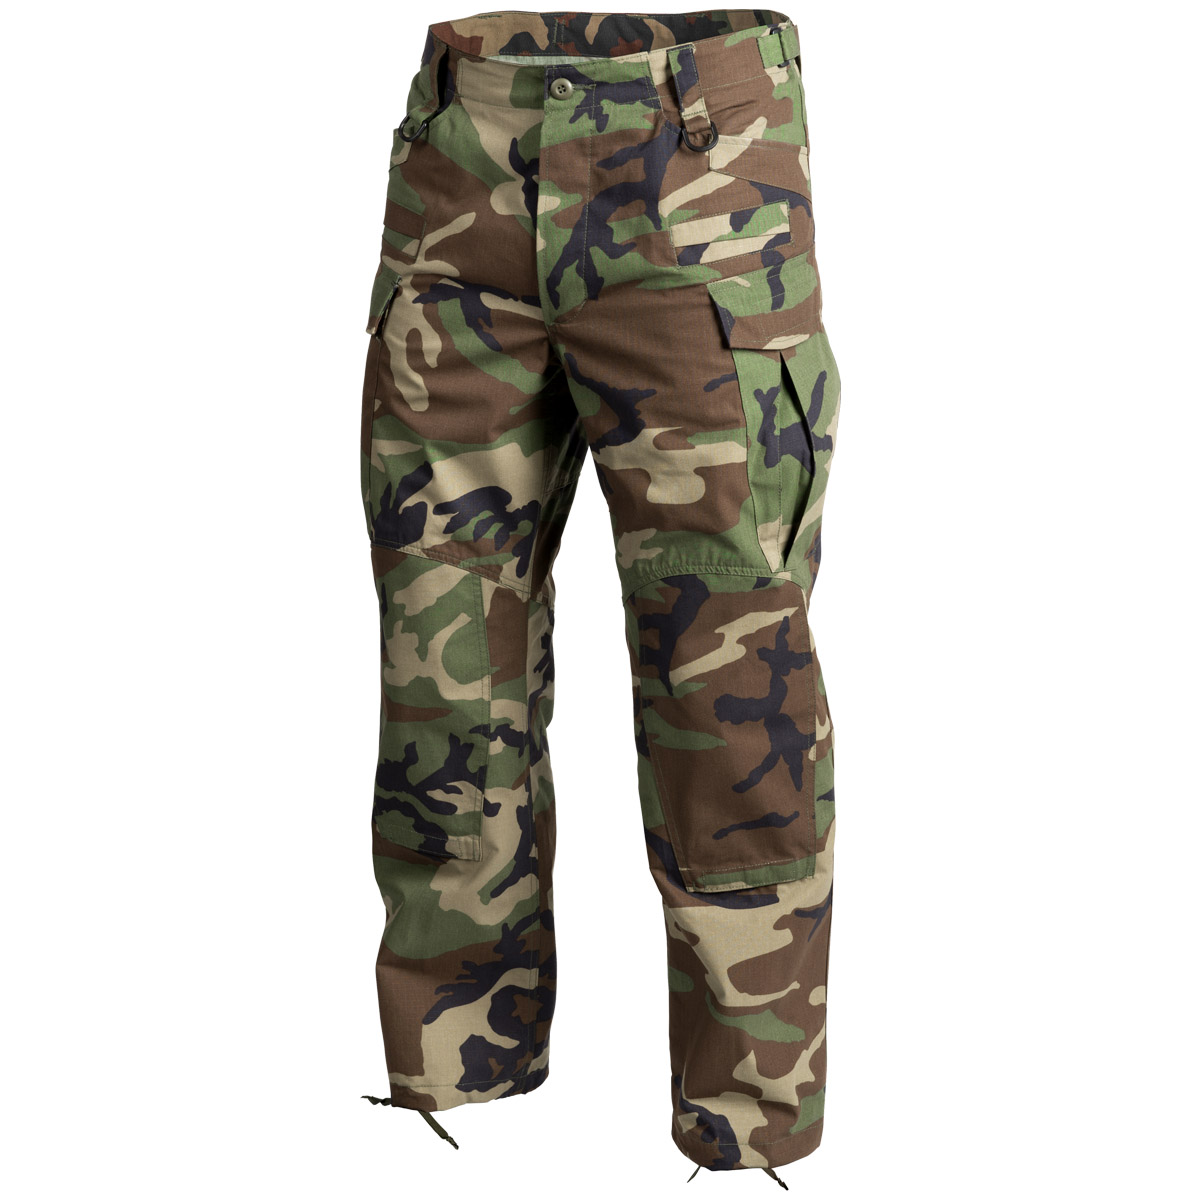 Helikon SFU NEXT Army Combat Trousers Mens Cadet Tactical Pants US ...